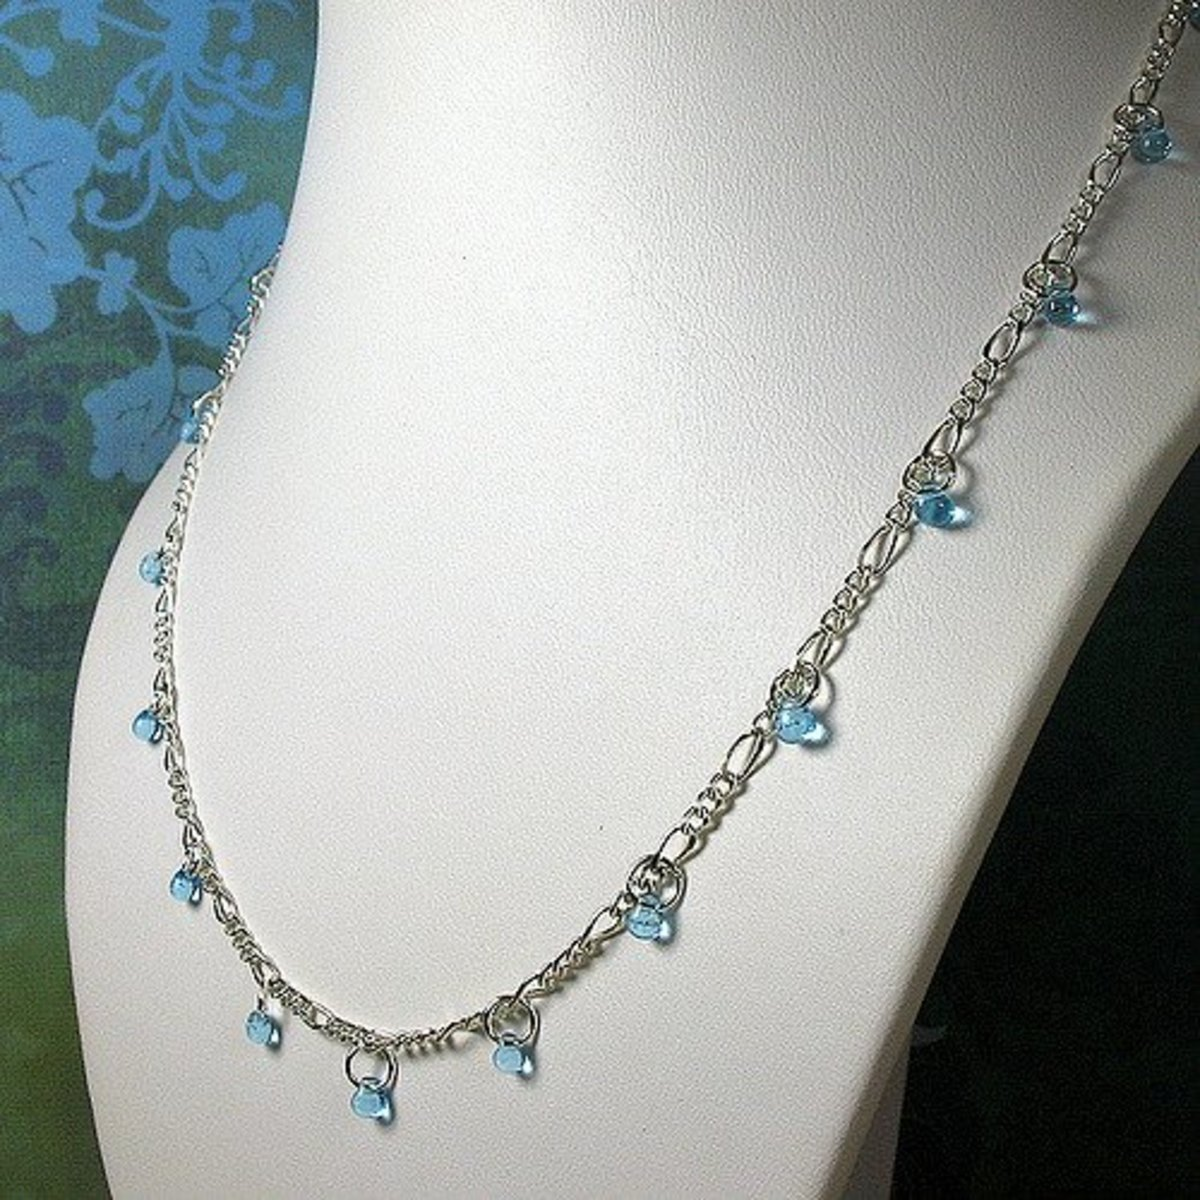 Embellished Figaro necklace chain.